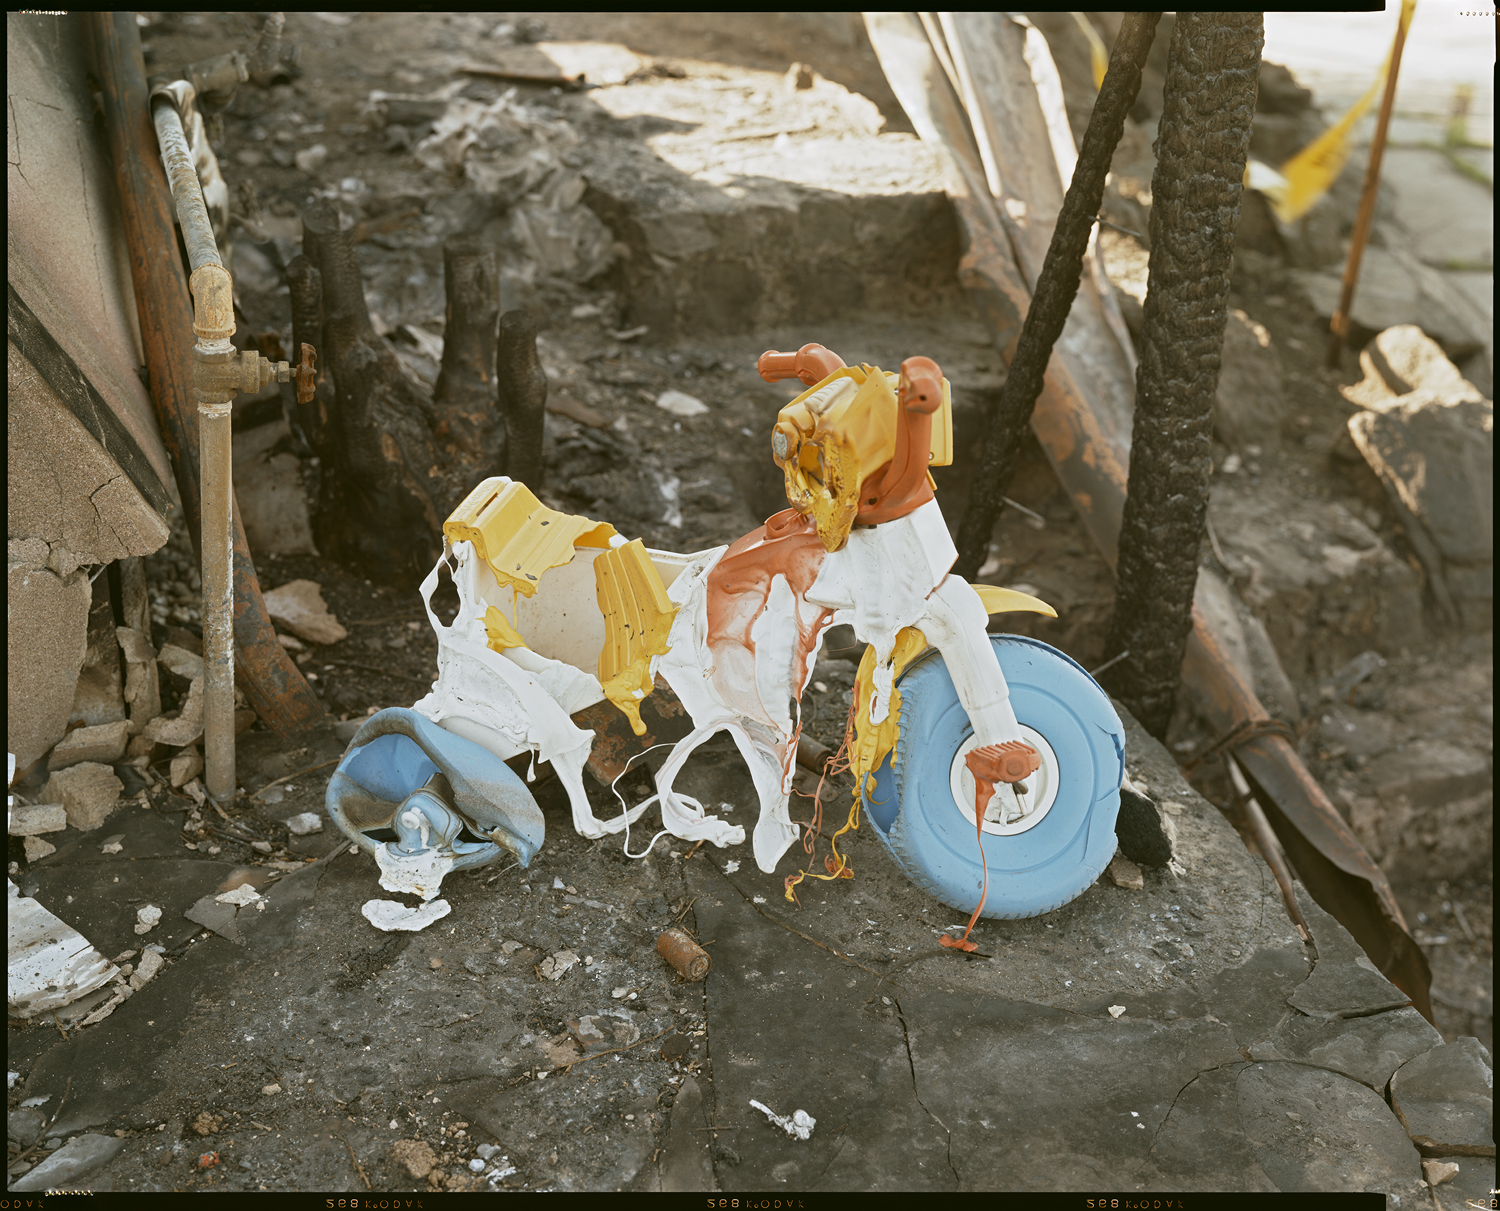 Oakland Fire #107-91 (Melted Tricycle), 1991